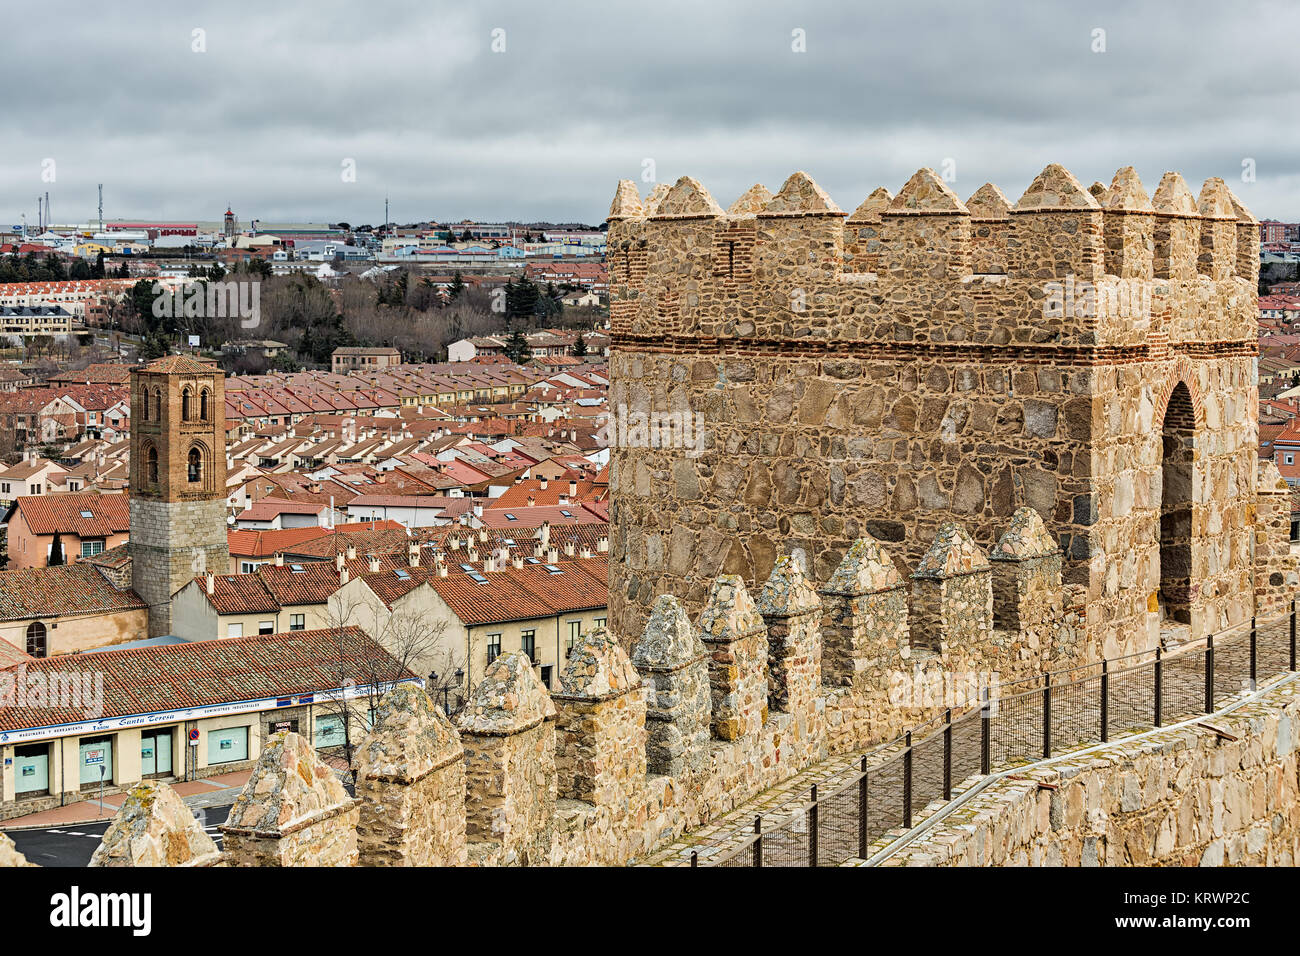 Detail of these famous walls in Avila. Spain - Stock Image